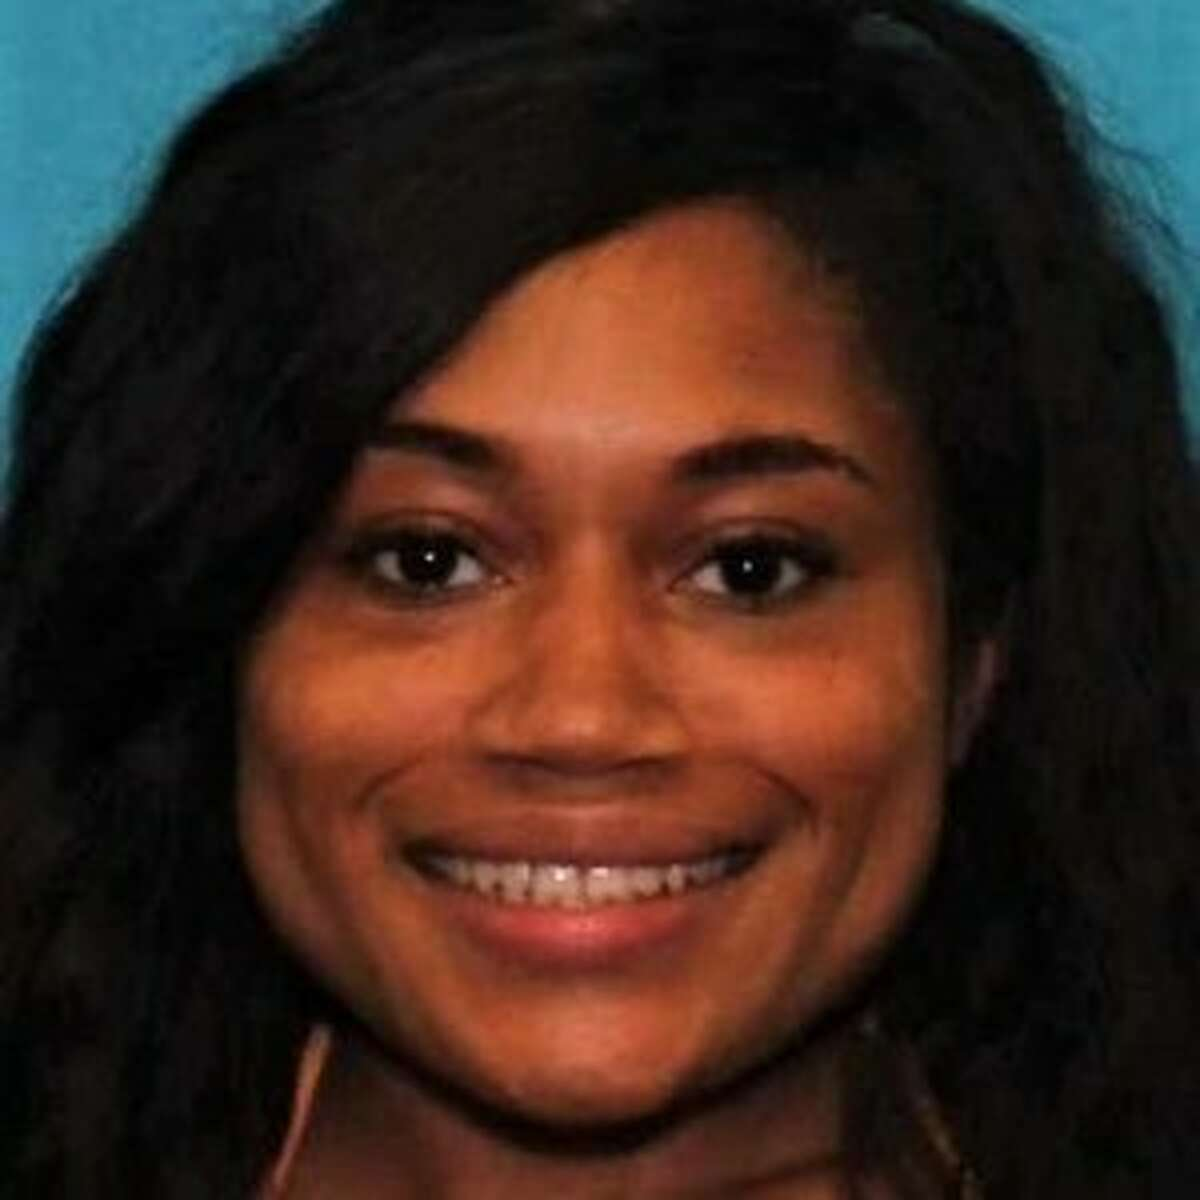 Emmishae Kirby, 29, had been missing since Sept. 18 until her remains were found Oct. 3 near Bear Creek Pioneers Park in west Harris County.